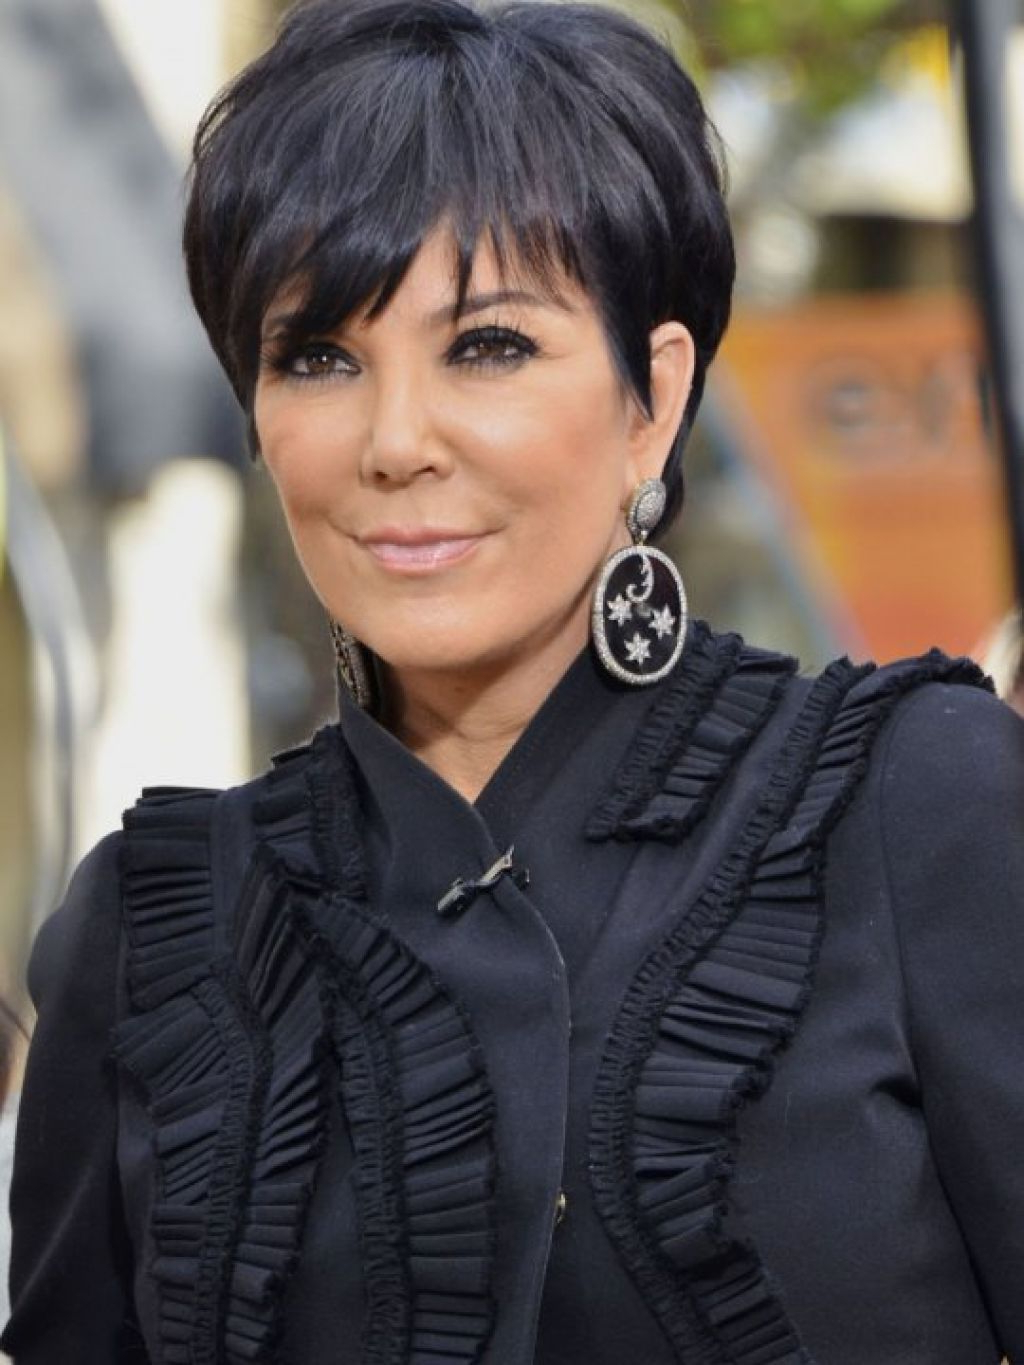 Hairstyles Kris Jenner Simple Short Hair Style , This Style Is Using Regarding Preferred Medium Haircuts Kris Jenner (View 12 of 20)